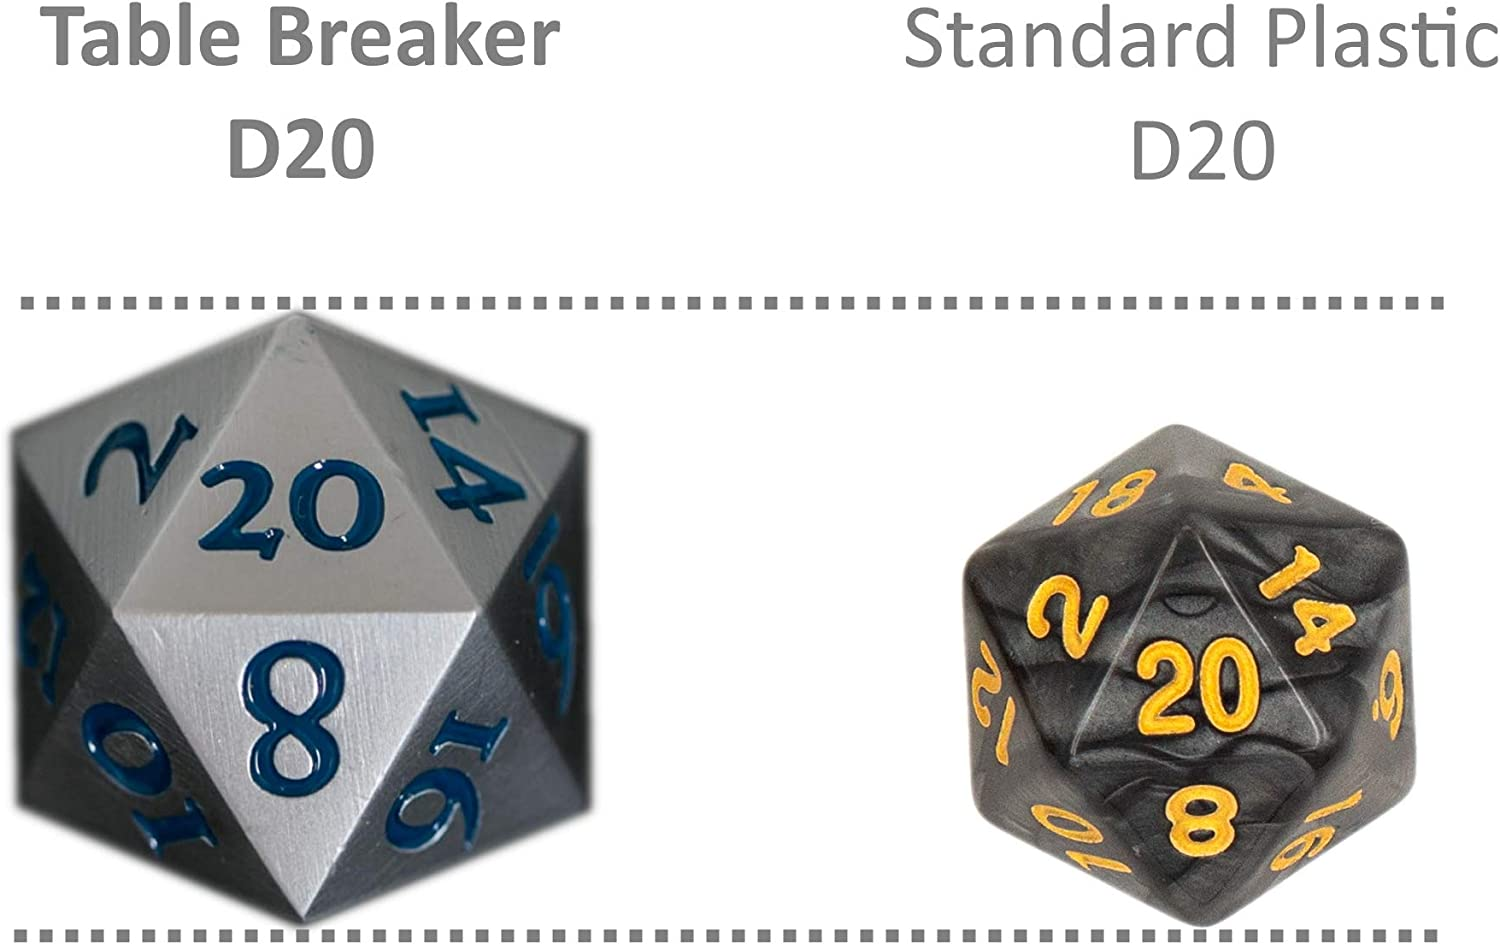 Extra Large Solid Metal Silver D20 Dice 20 face with Blue Numbers Extra Heavy DND Dice Pathfinder Call of Cthulu Standard Dice Dungeons and Dragons Tabletop RPG